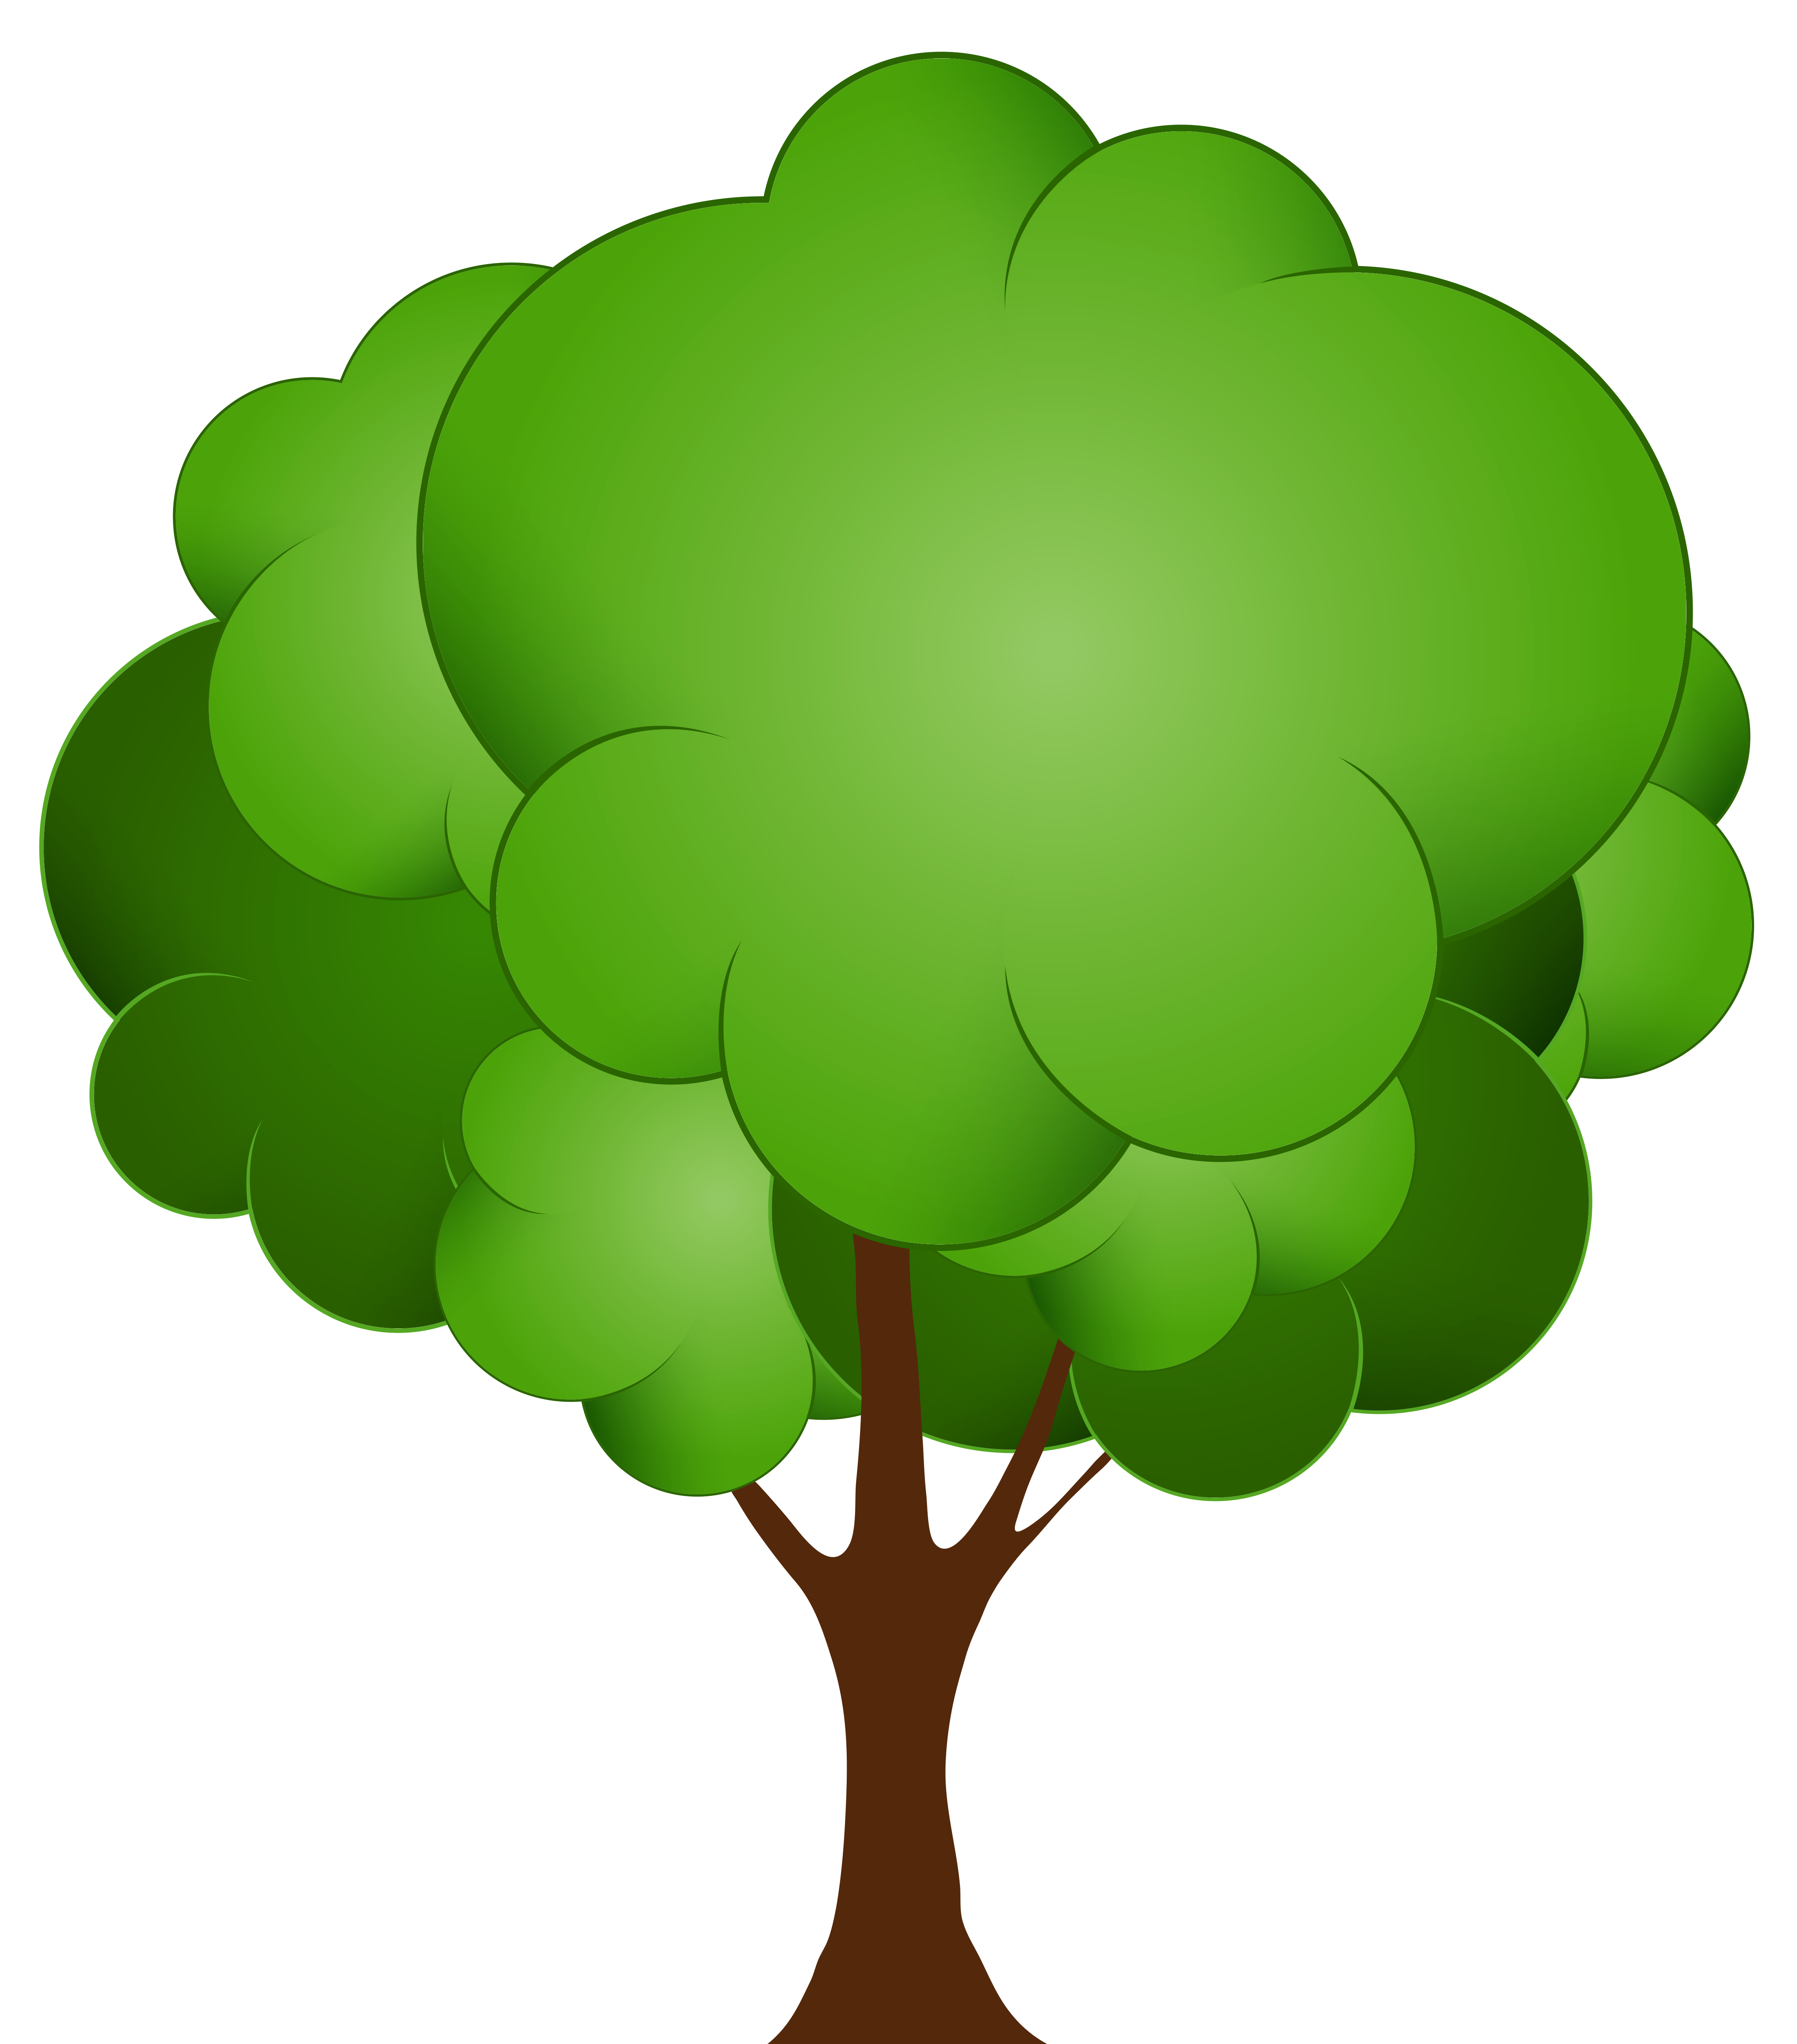 tree clipart at getdrawings com free for personal use tree clipart rh getdrawings com tree clipart silhouette tree clipart transparent background